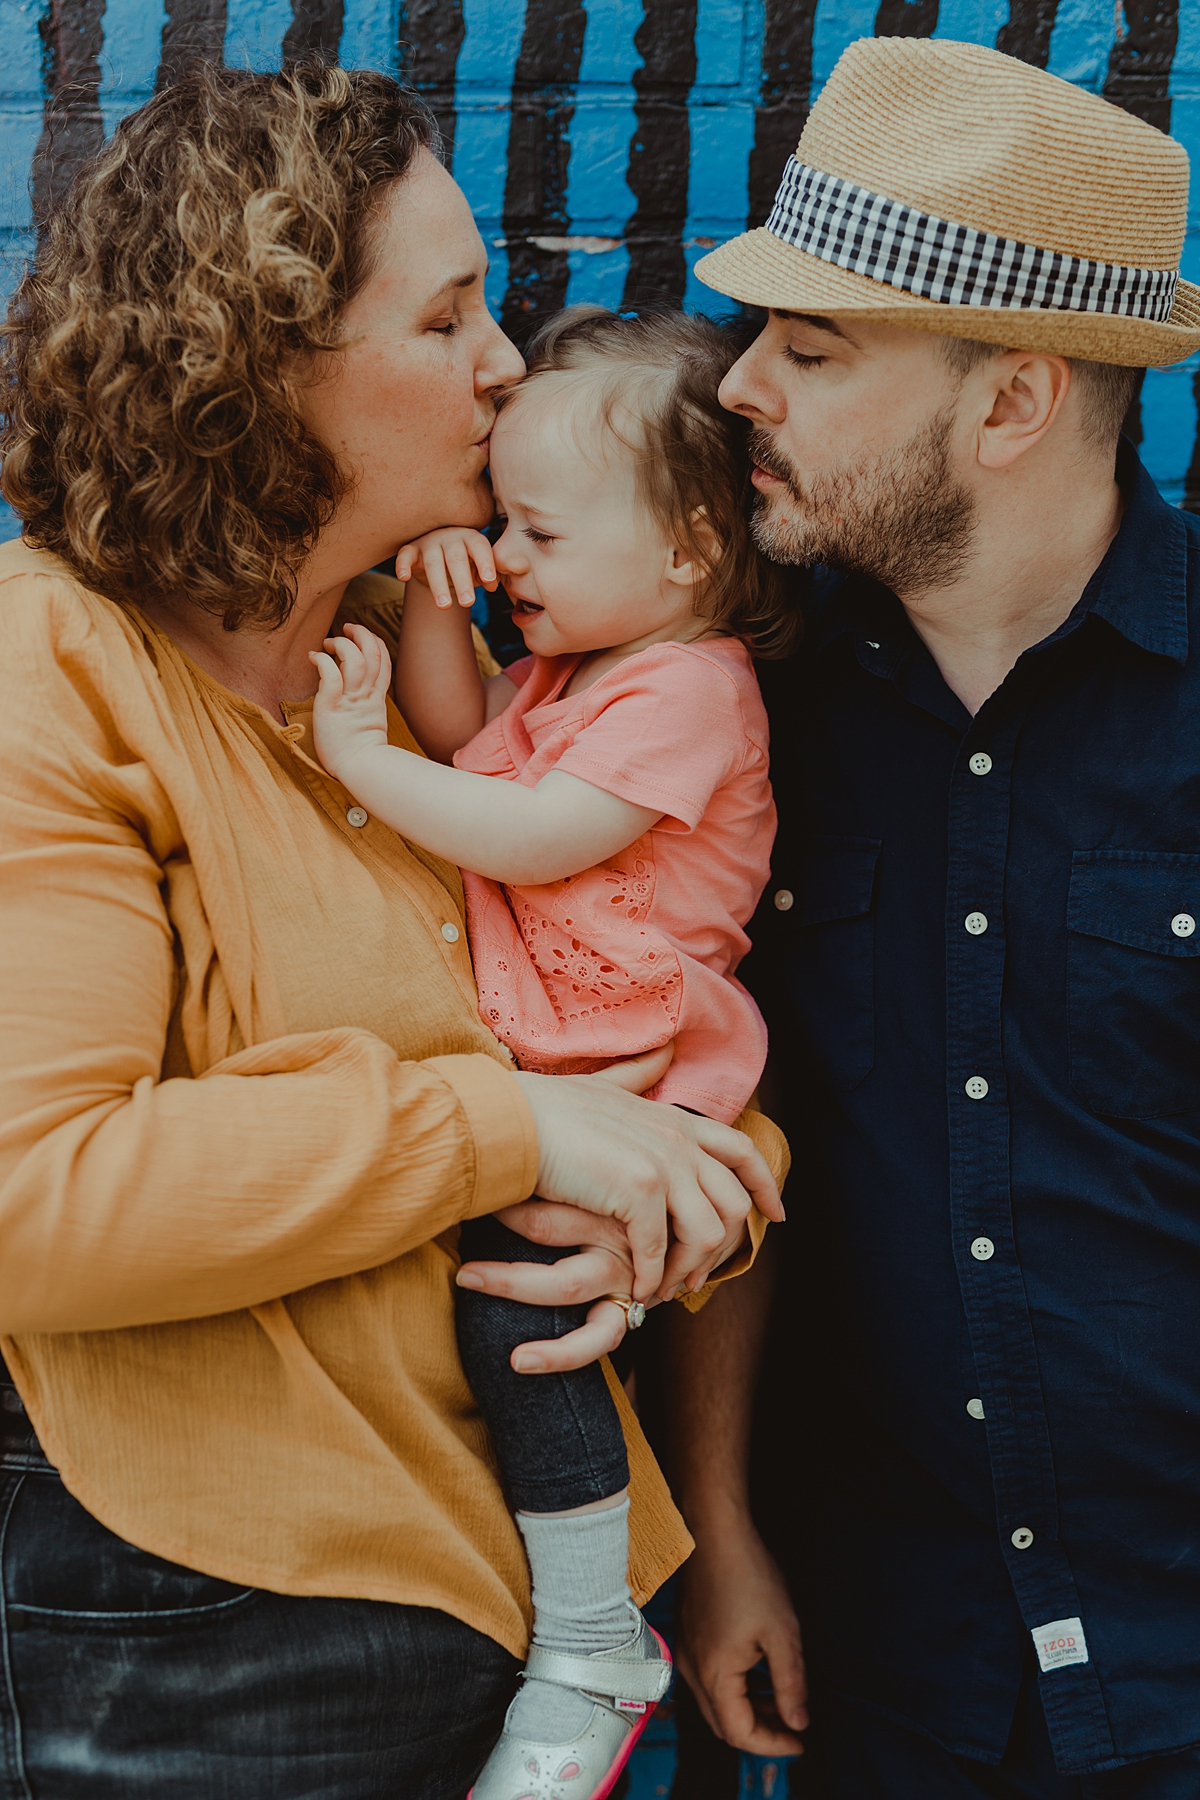 Orange County family photographer. Photo of mom and dad kissing their young two year old daughter during outdoor family photo session with Krystil McDowall Photography